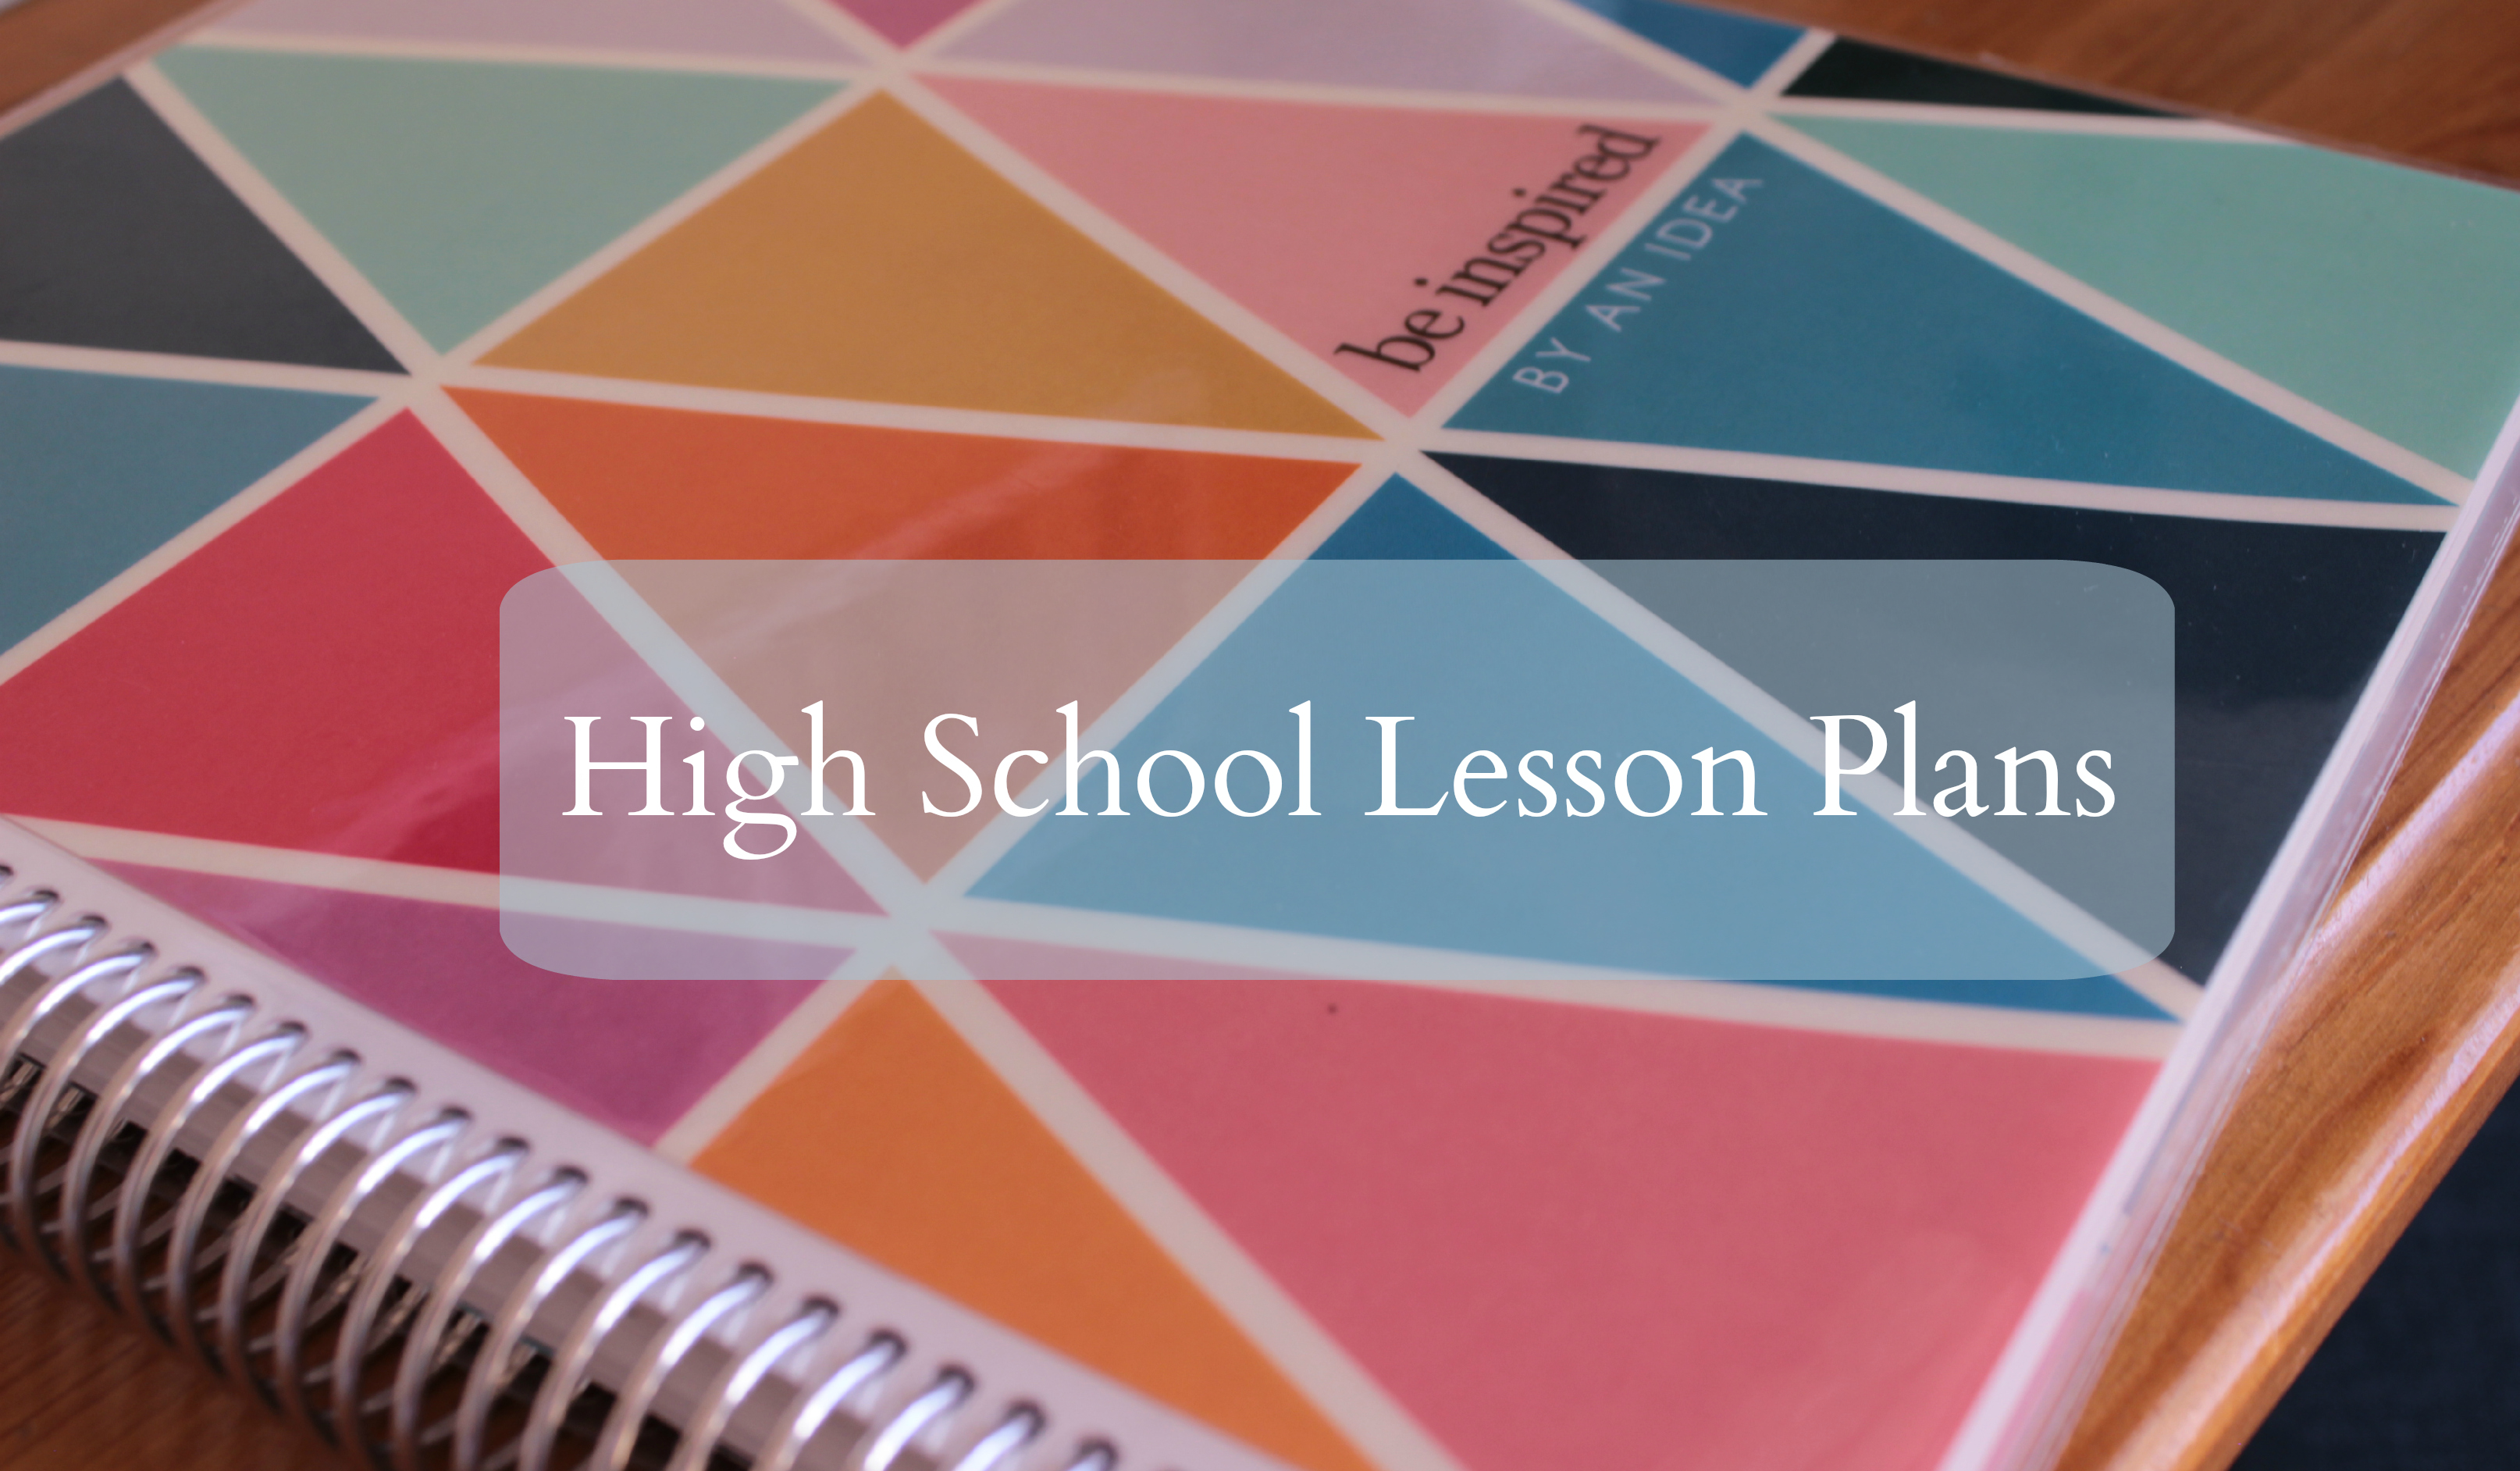 highschoollessonplans